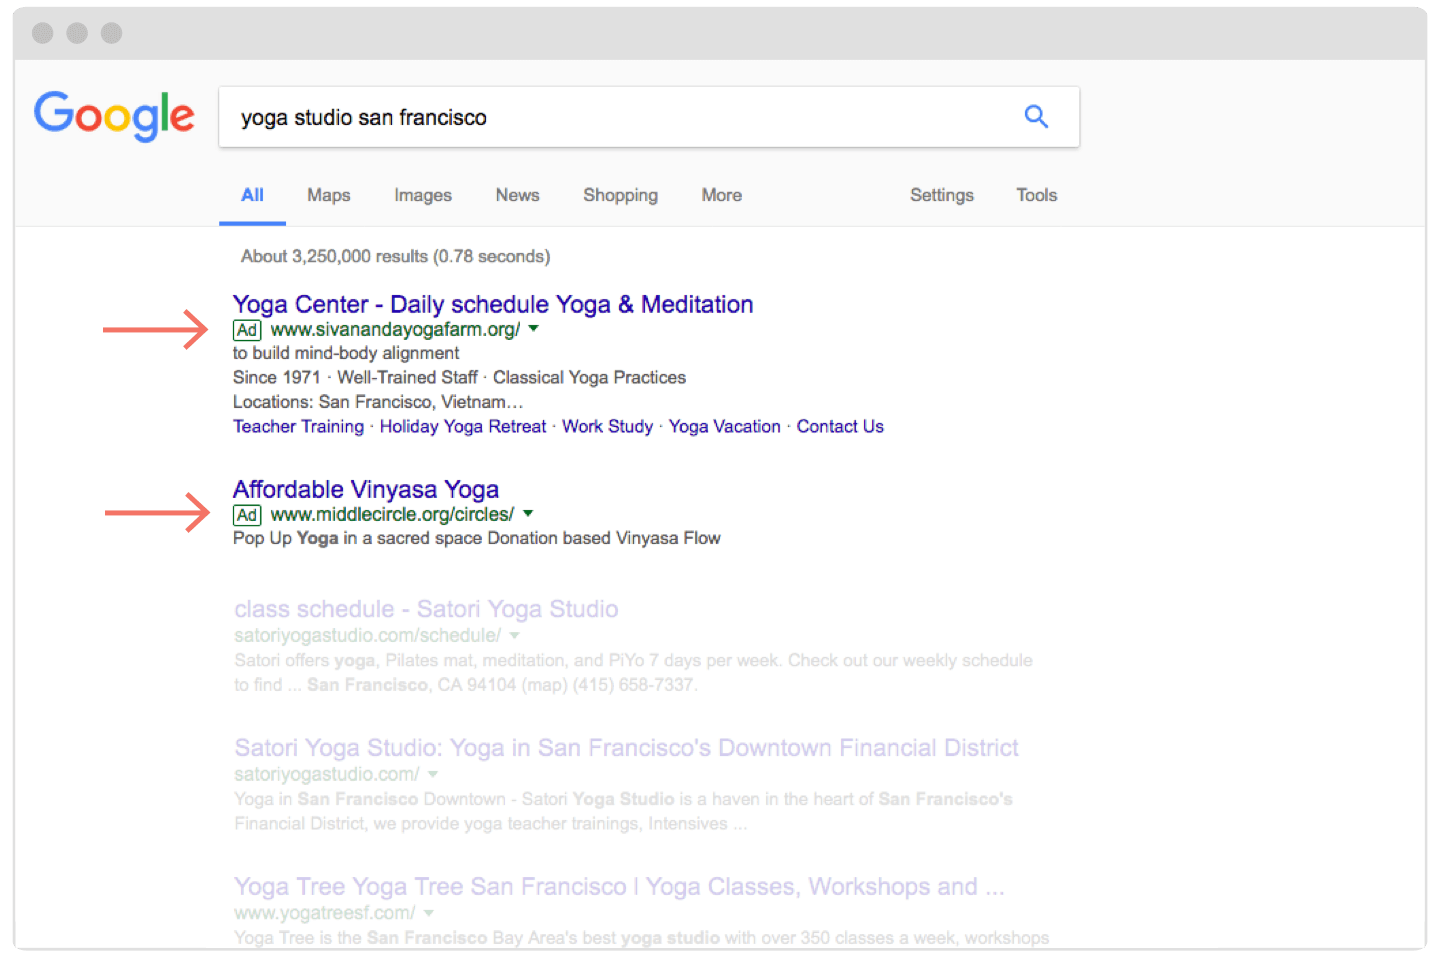 How to Make Sure Your Yoga Studio is Found on Google - Momoyoga